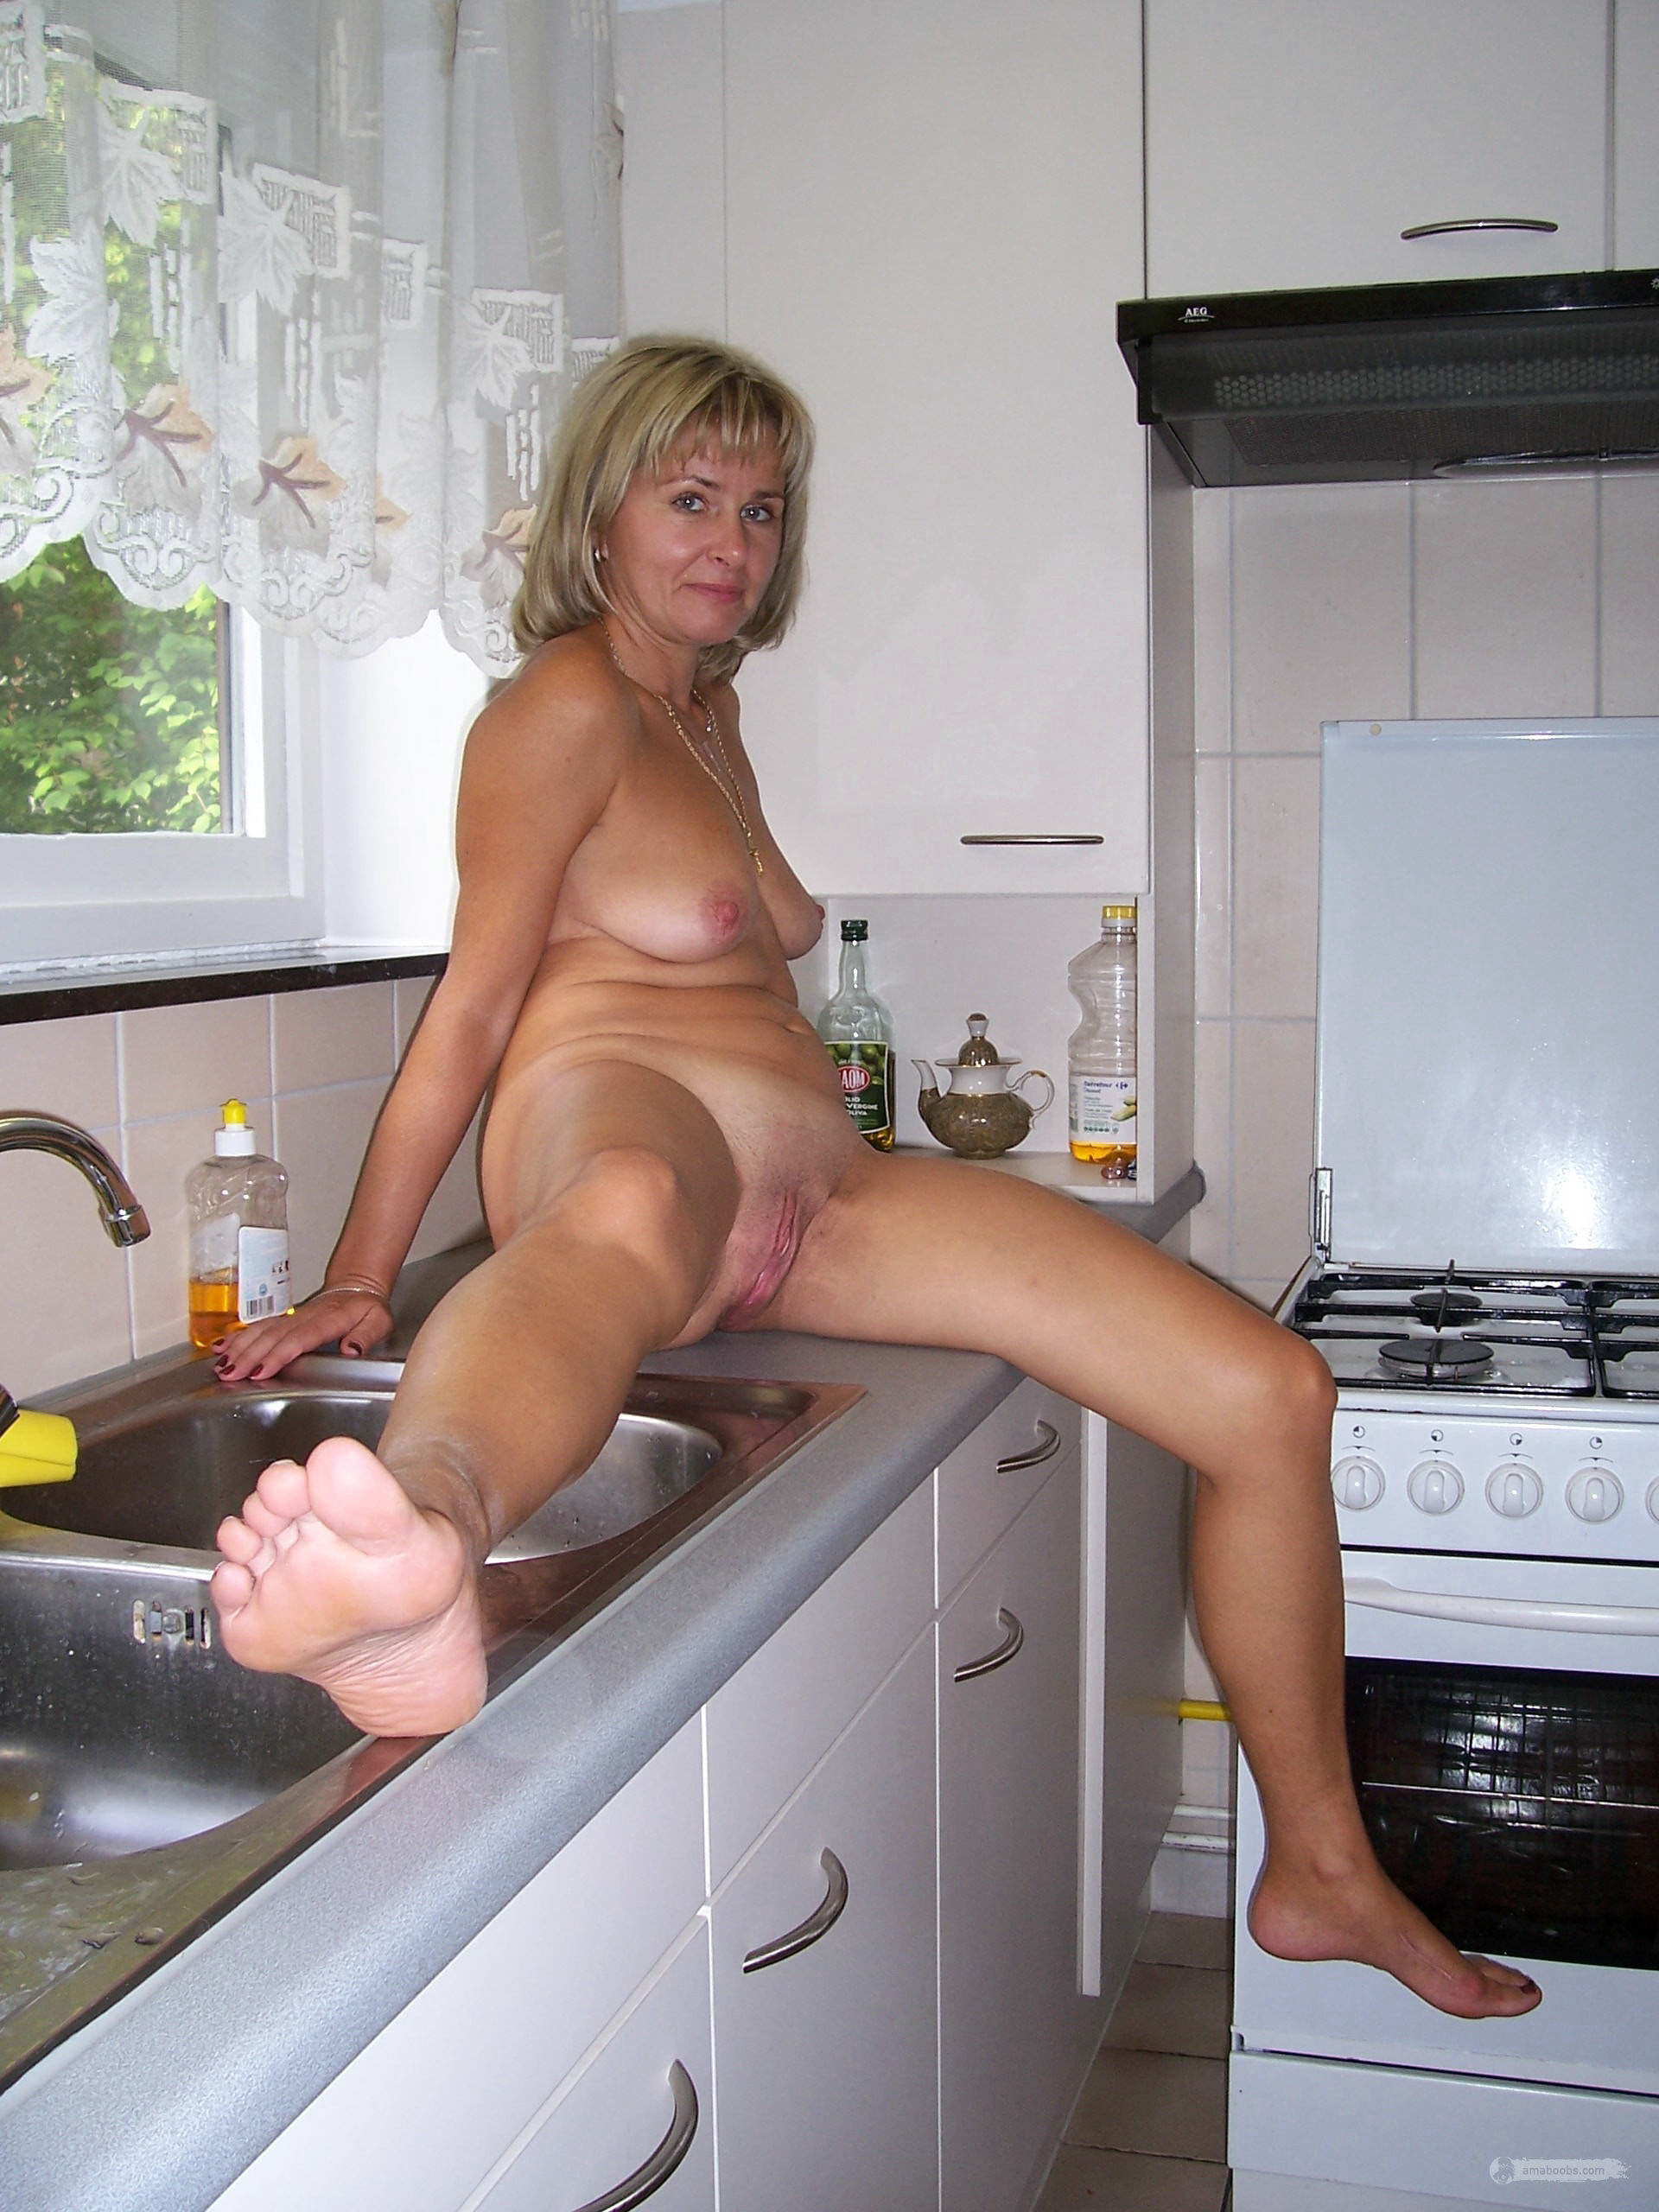 Nude Housewife Pictures